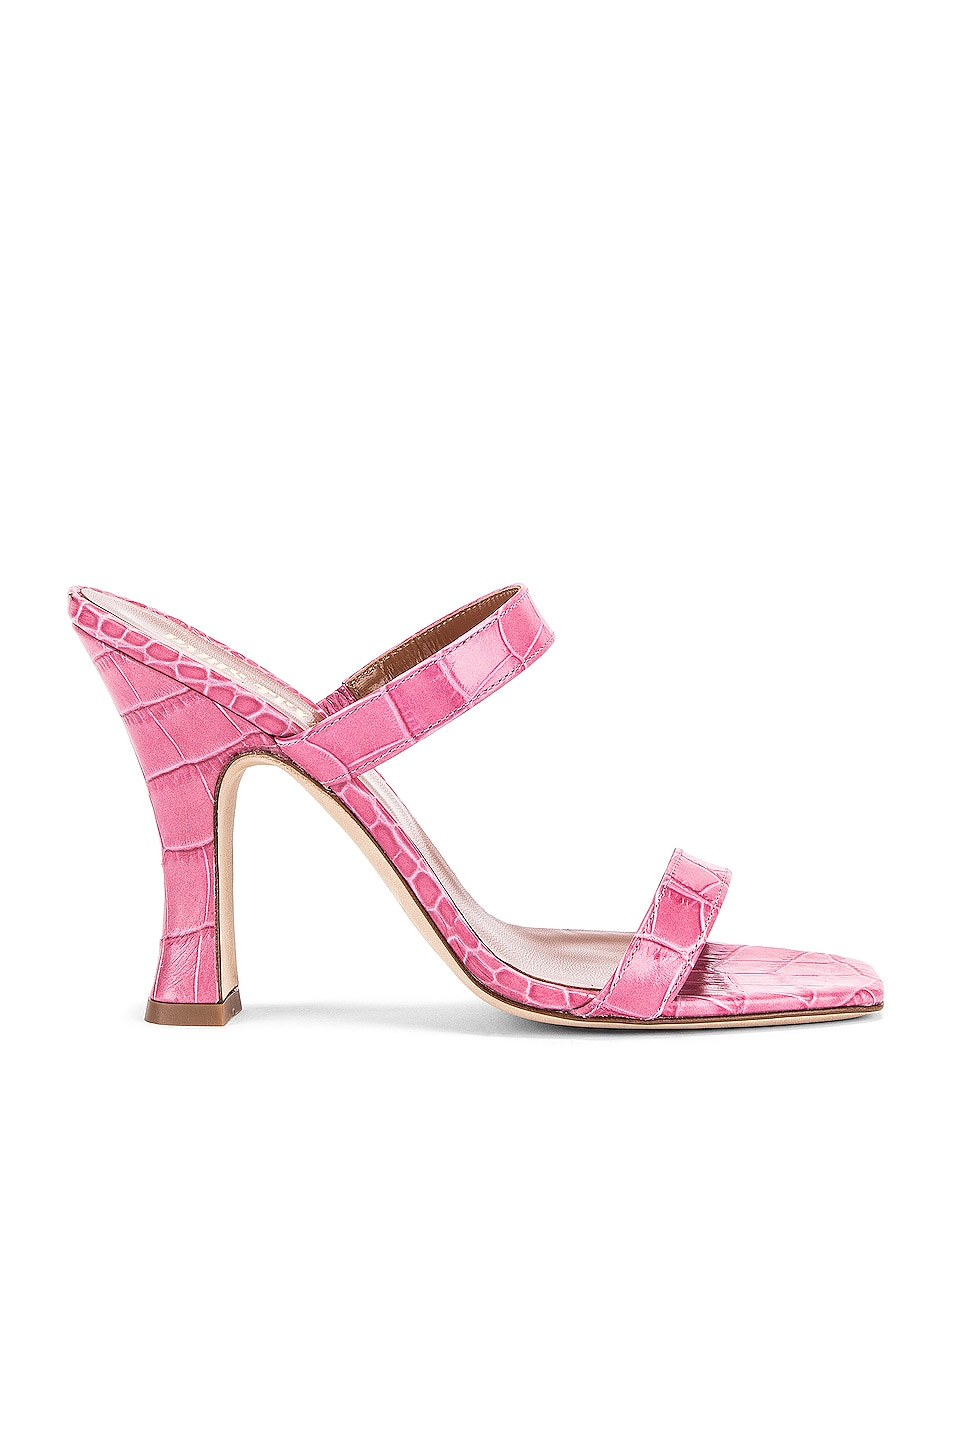 Image 1 of Paris Texas Moc Croco Mule in Fuchsia